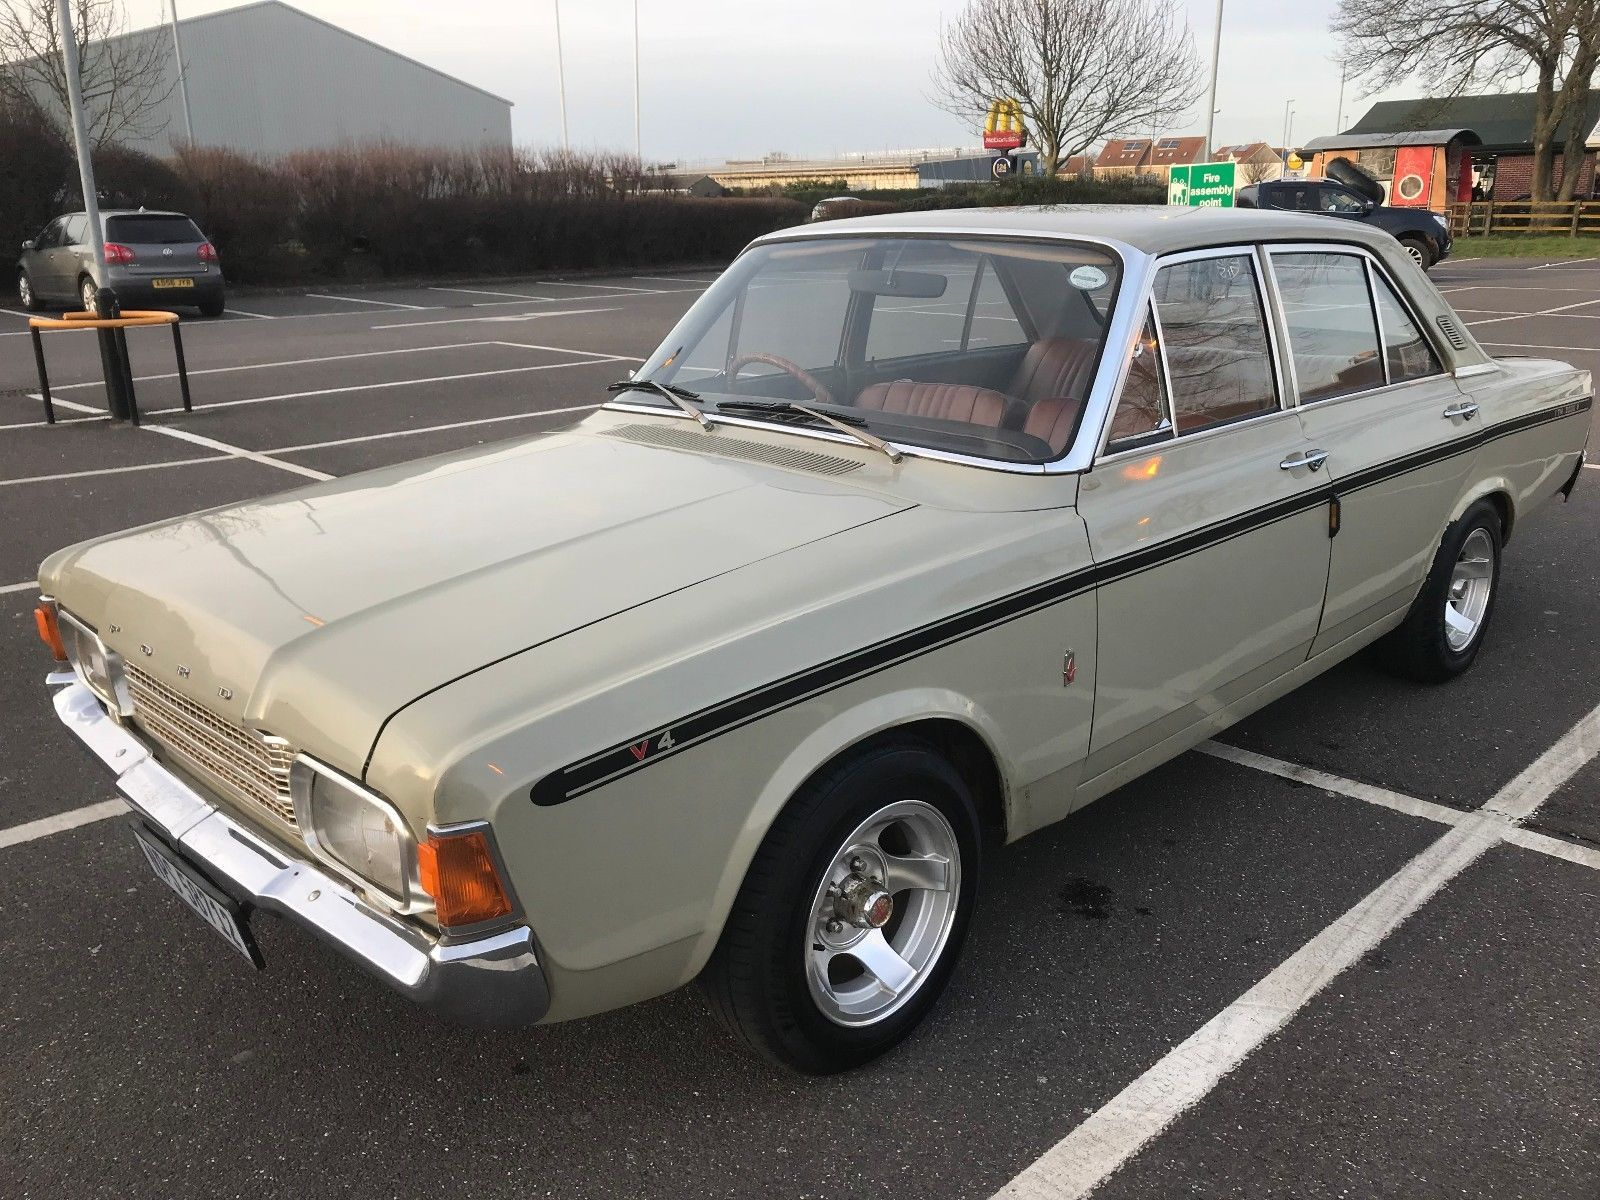 Ebay Ebay 1970 Ford Taunus 17m V4 Rhd Classic In Superb Condition Classic Ford Classic Cars